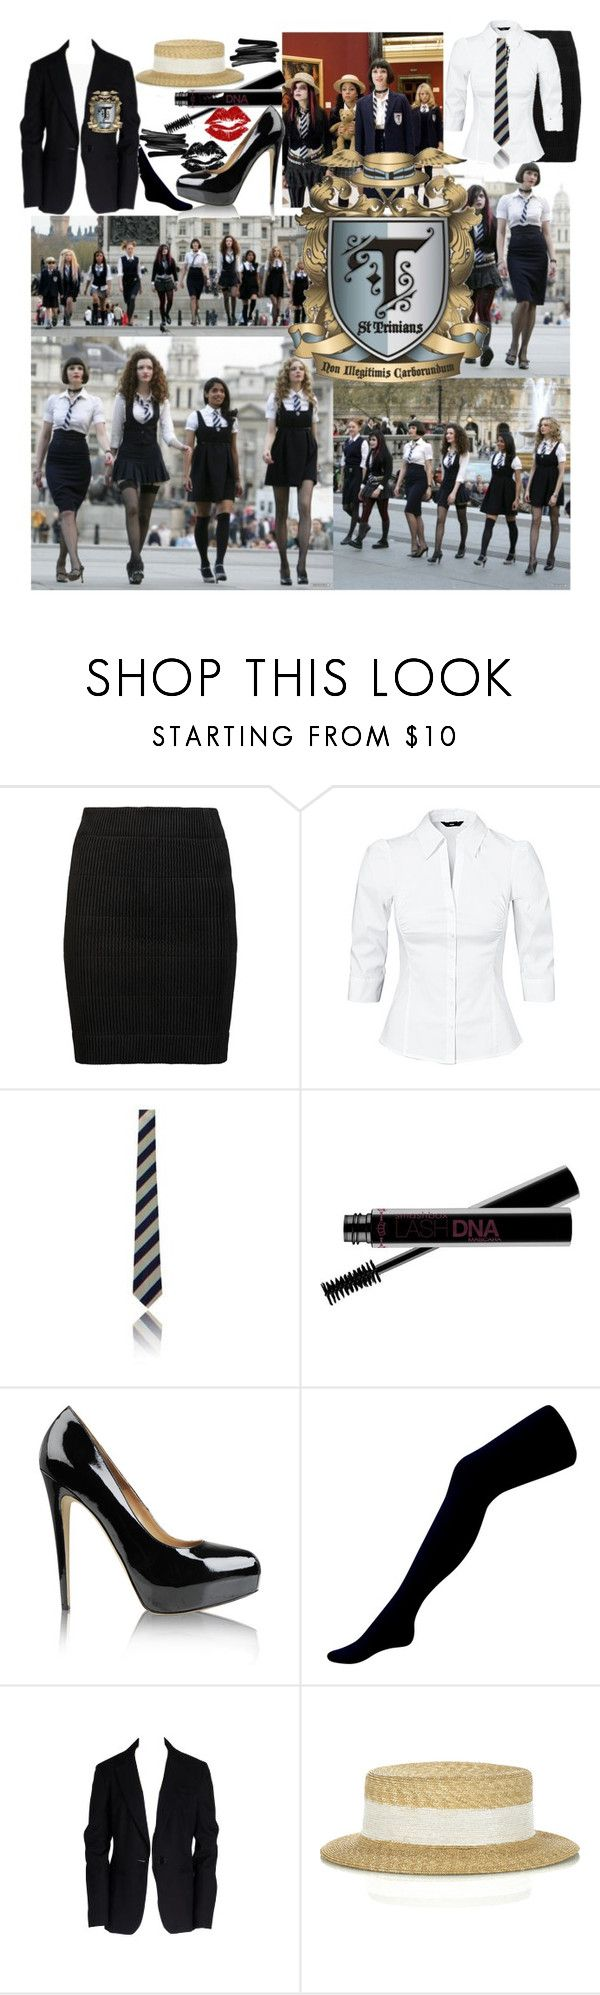 """""""St. Trinian's"""" by smiley3 ❤ liked on Polyvore featuring Julien Macdonald, H&M, Smashbox, Brian Atwood, Oasis, Trina Turk, Albertus Swanepoel and Lancôme"""